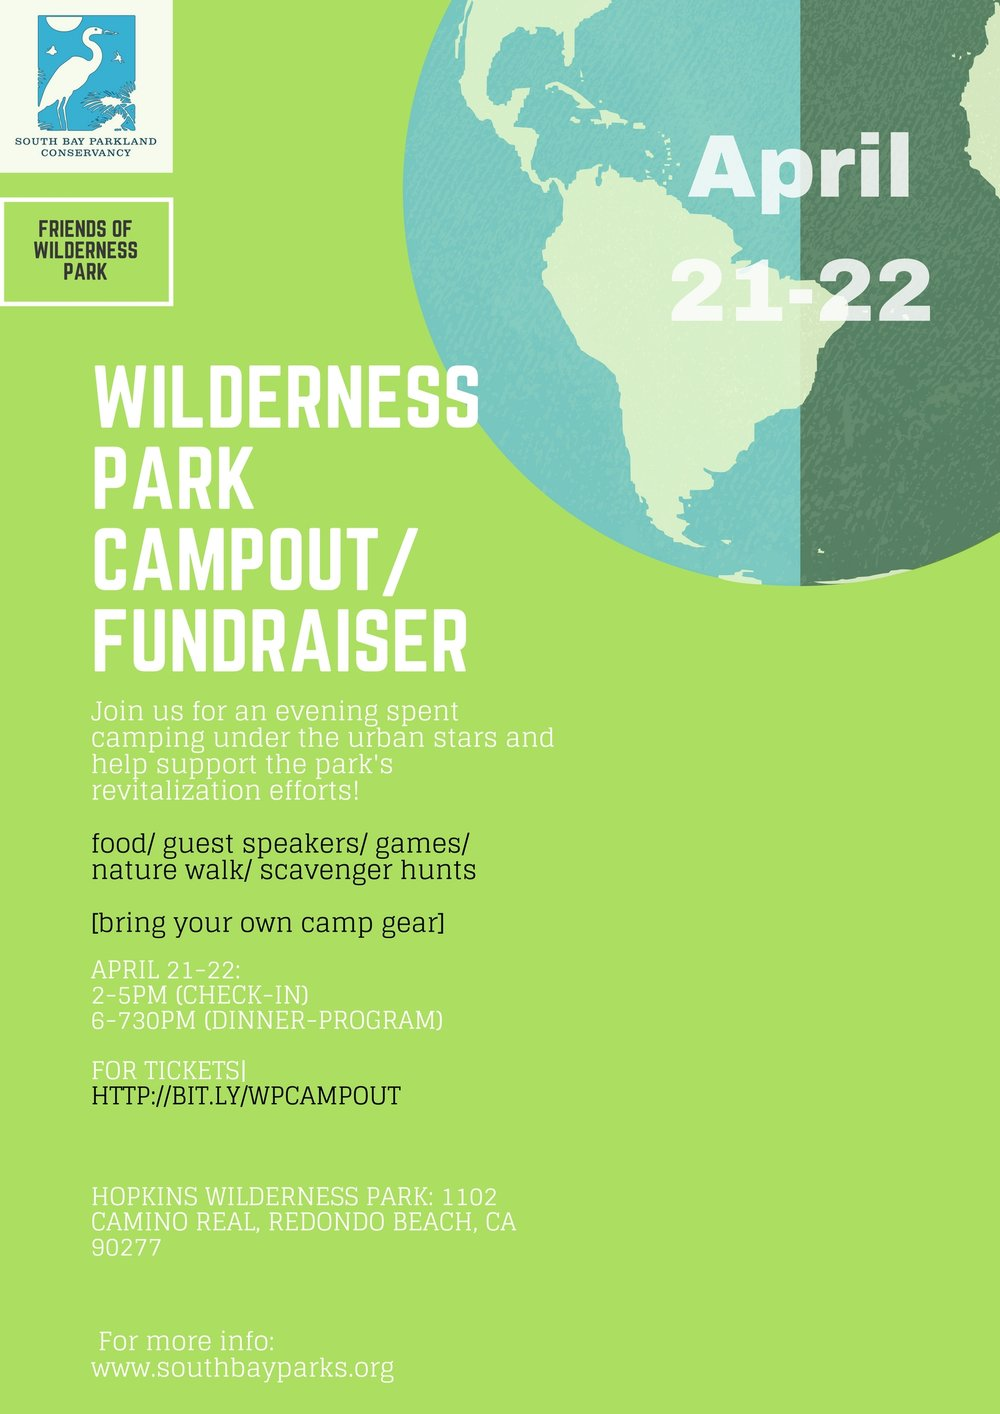 wilderness park campout%2F fundraiser.jpg